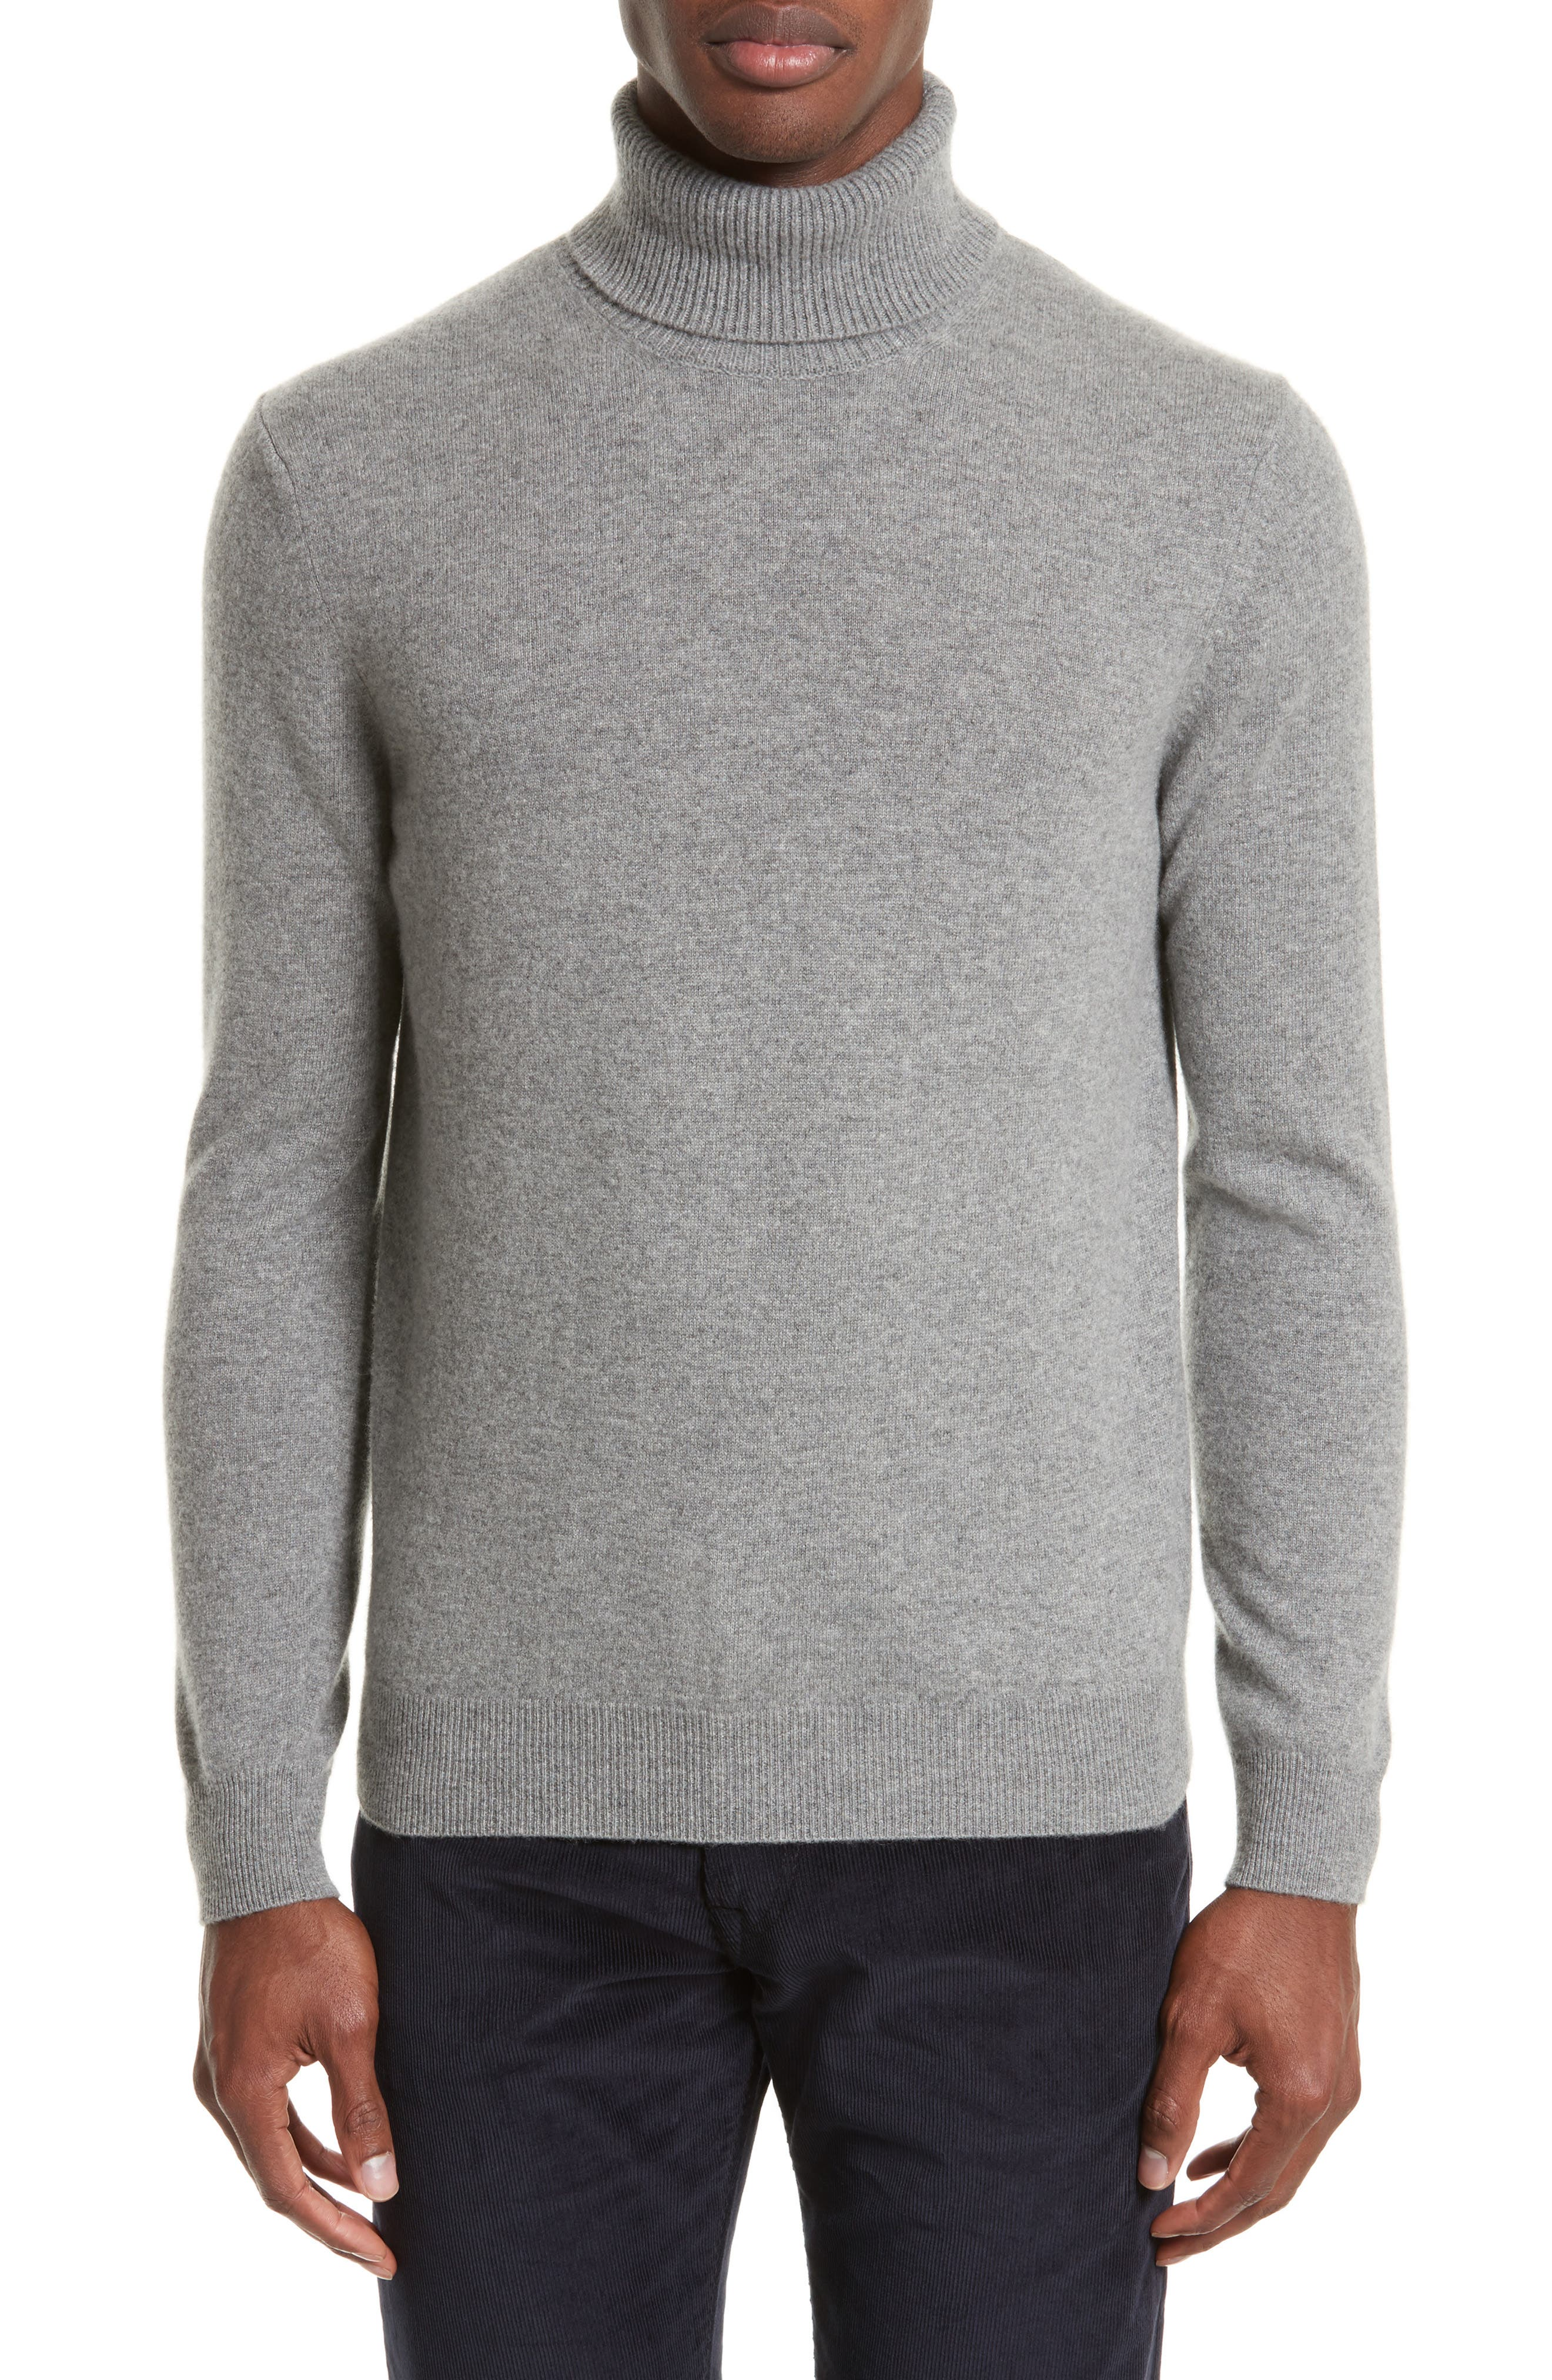 Alternate Image 1 Selected - Paul Smith Turtleneck Sweater